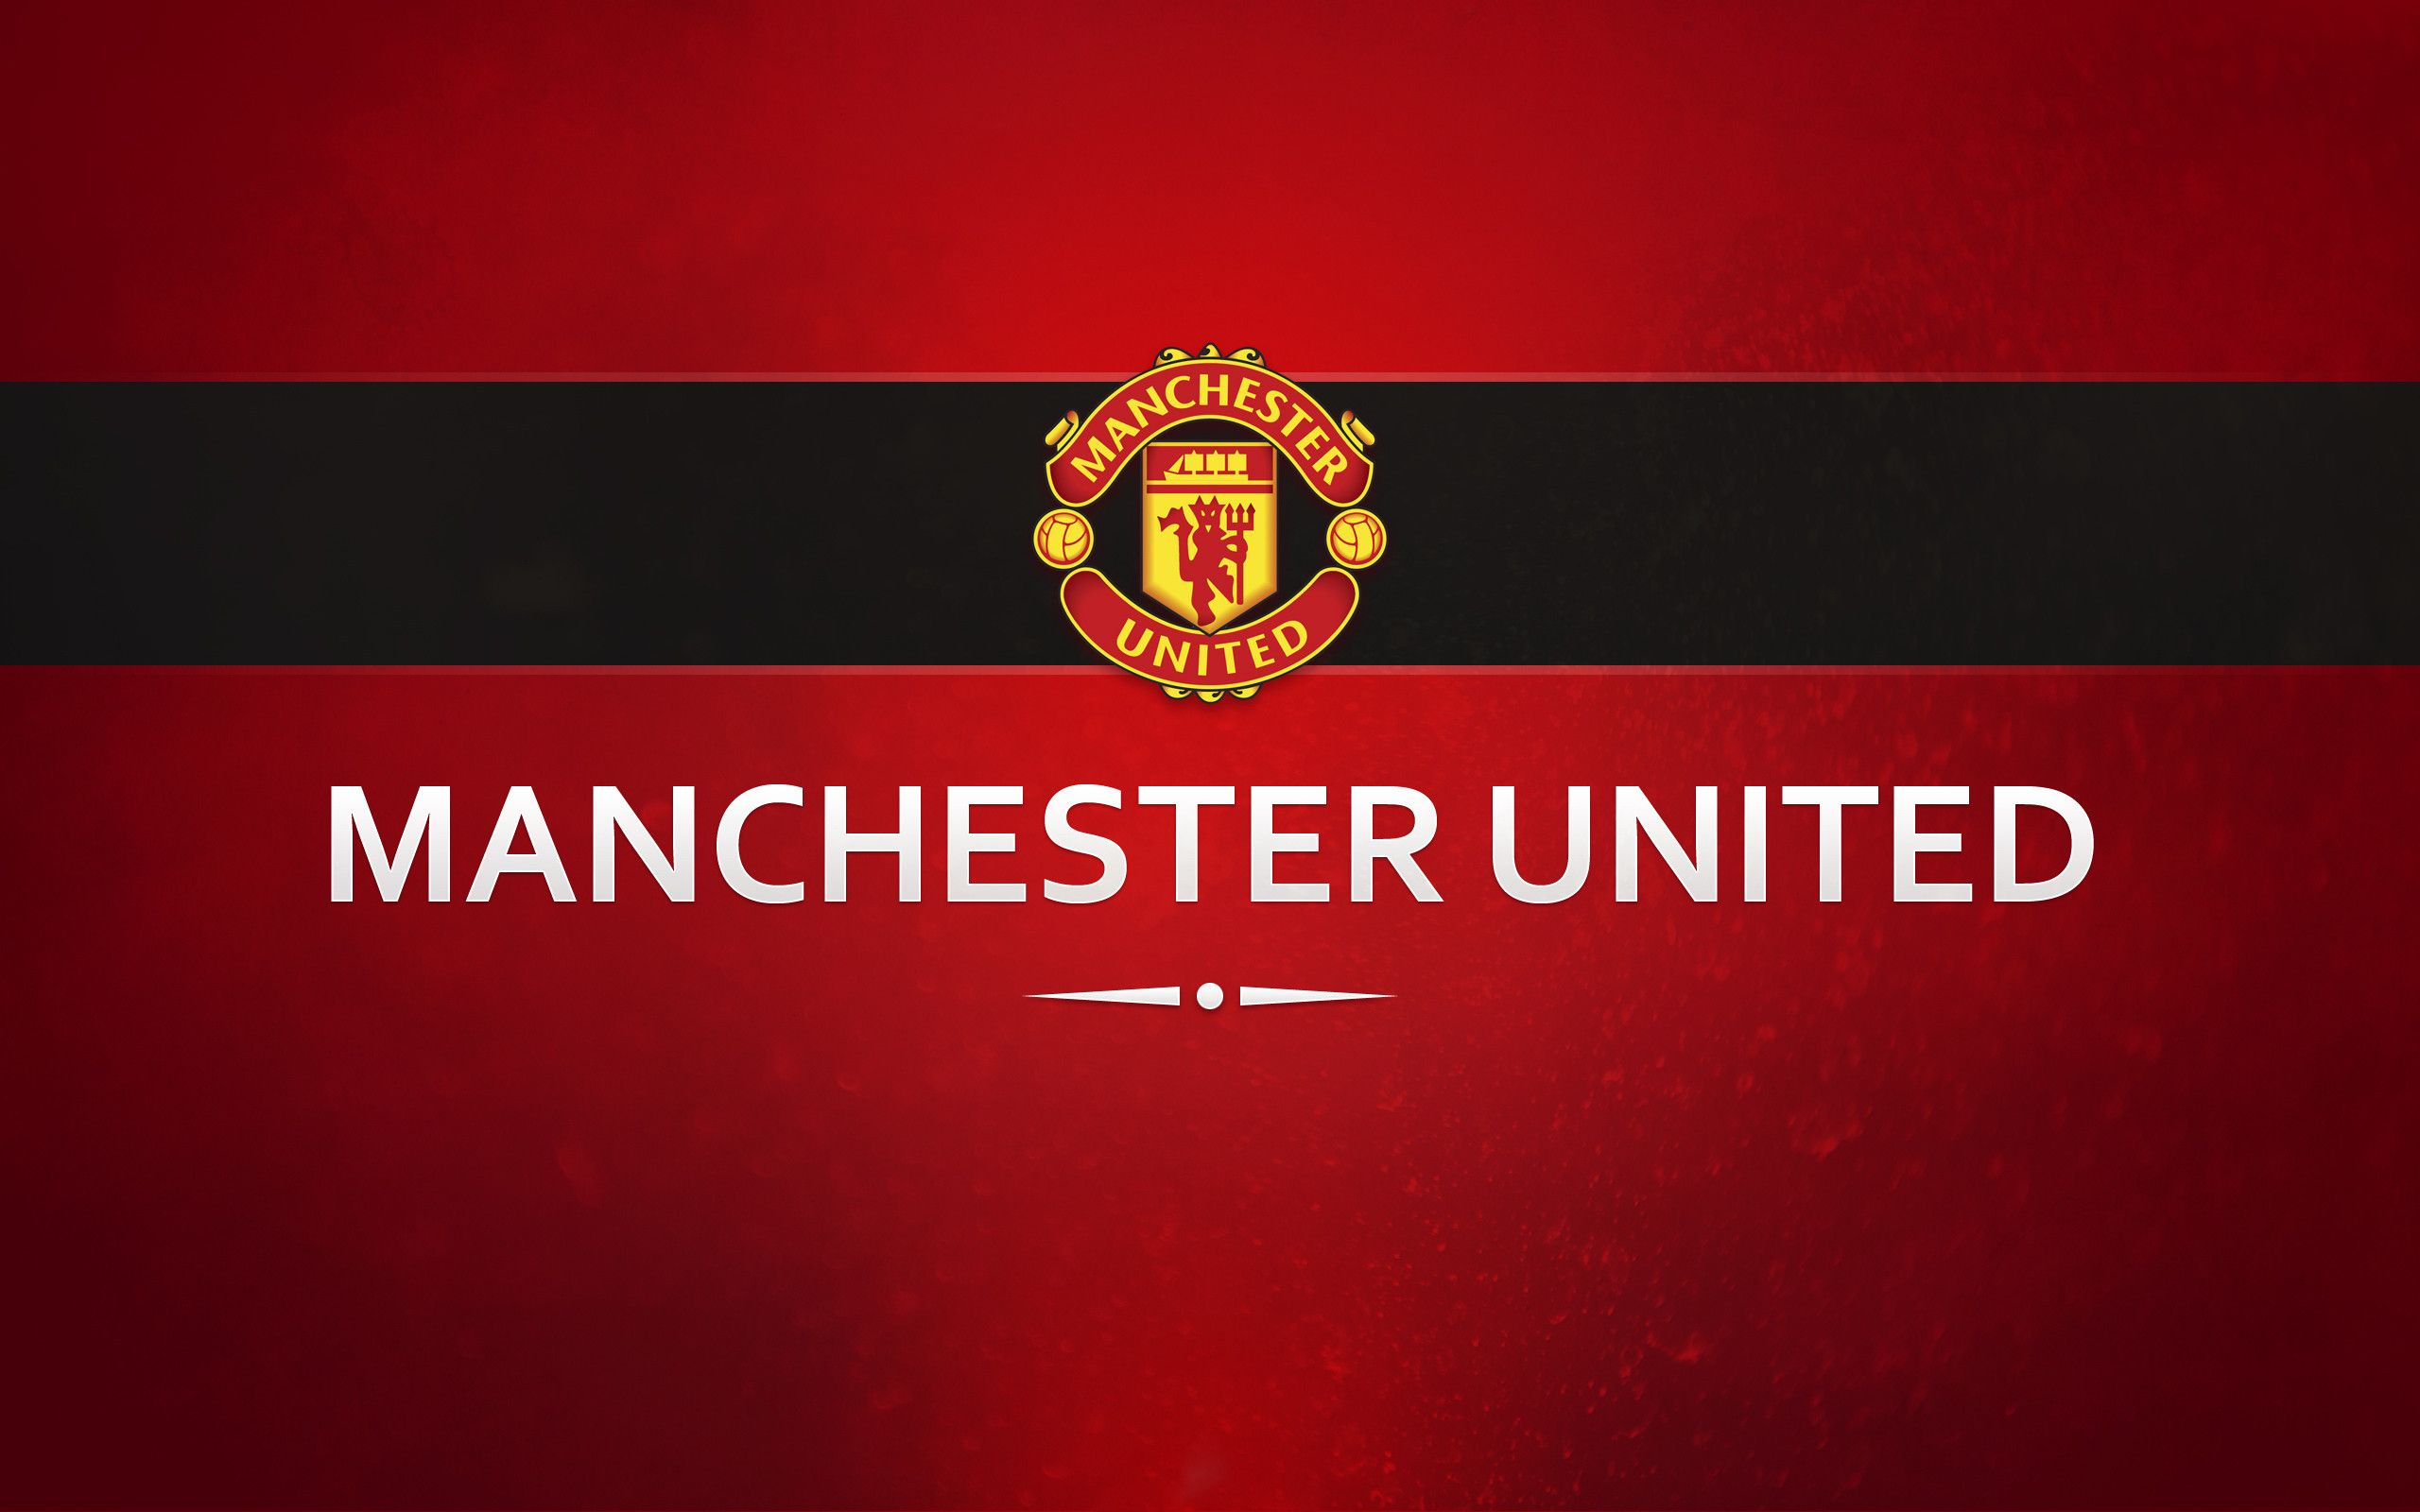 Man United Wallpaper